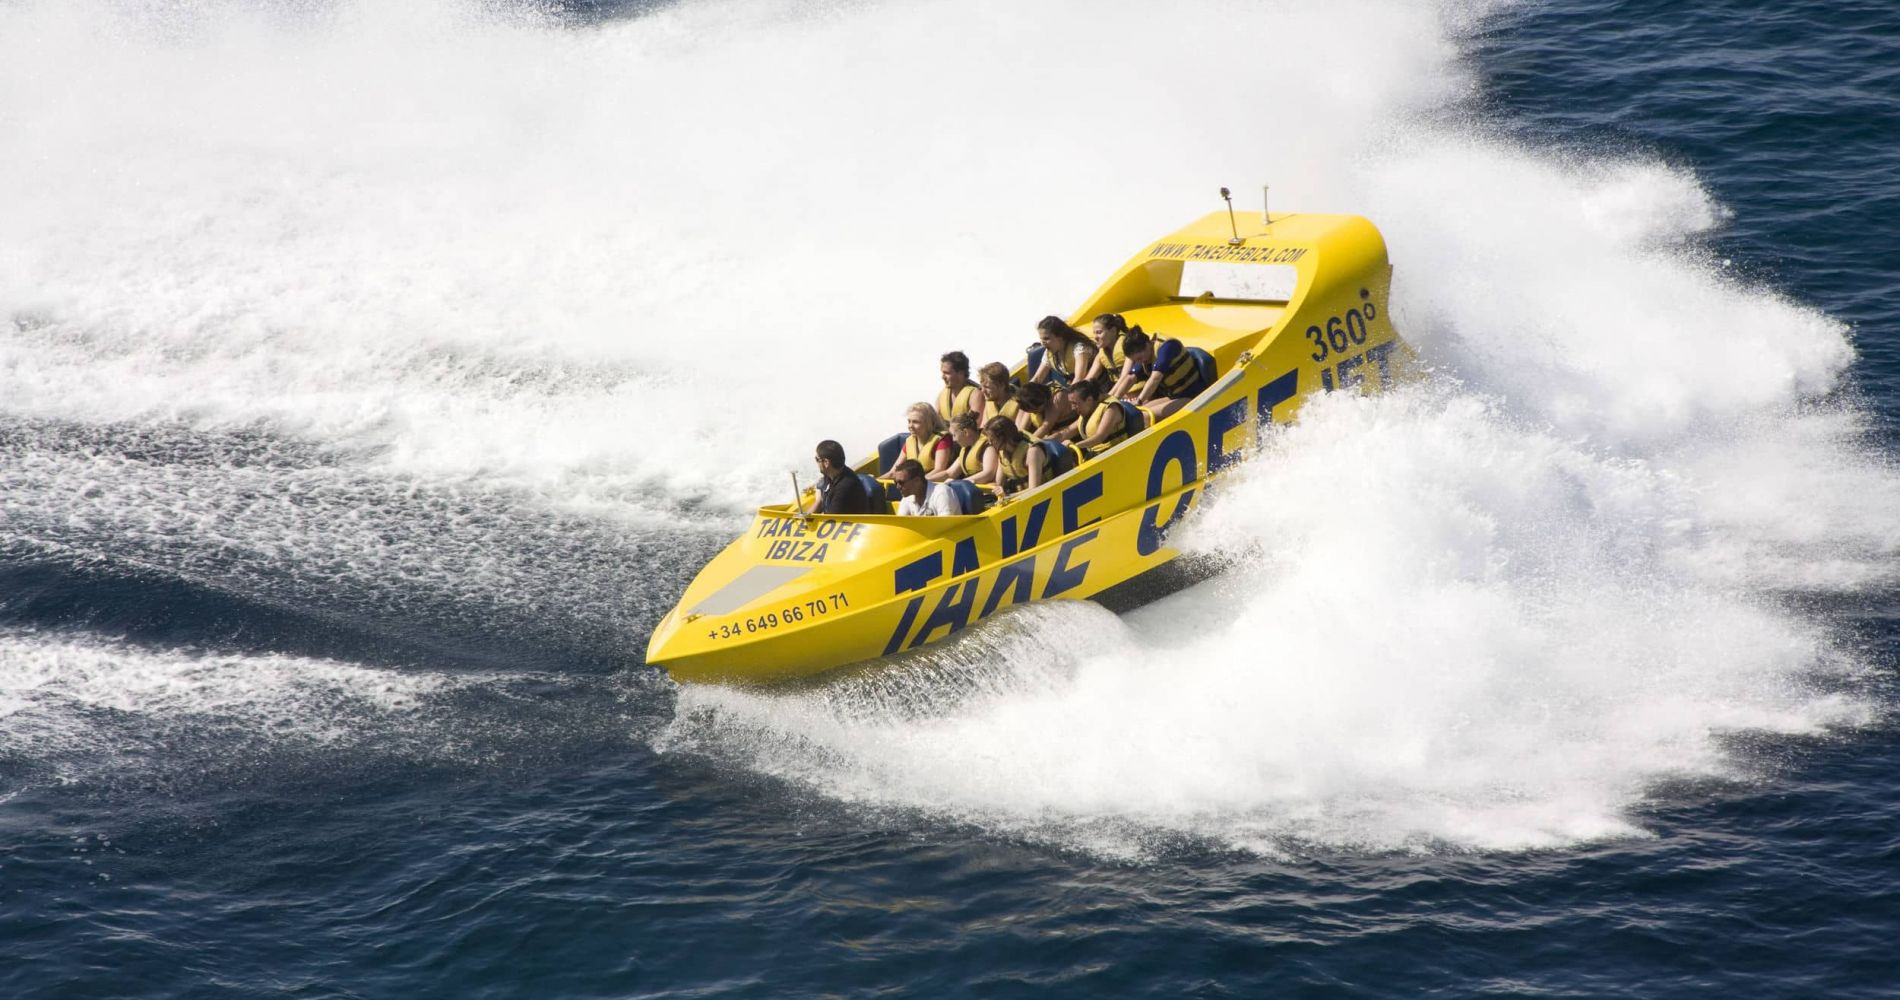 1-Hour Jet Boat 360 Ride in Ibiza for Two